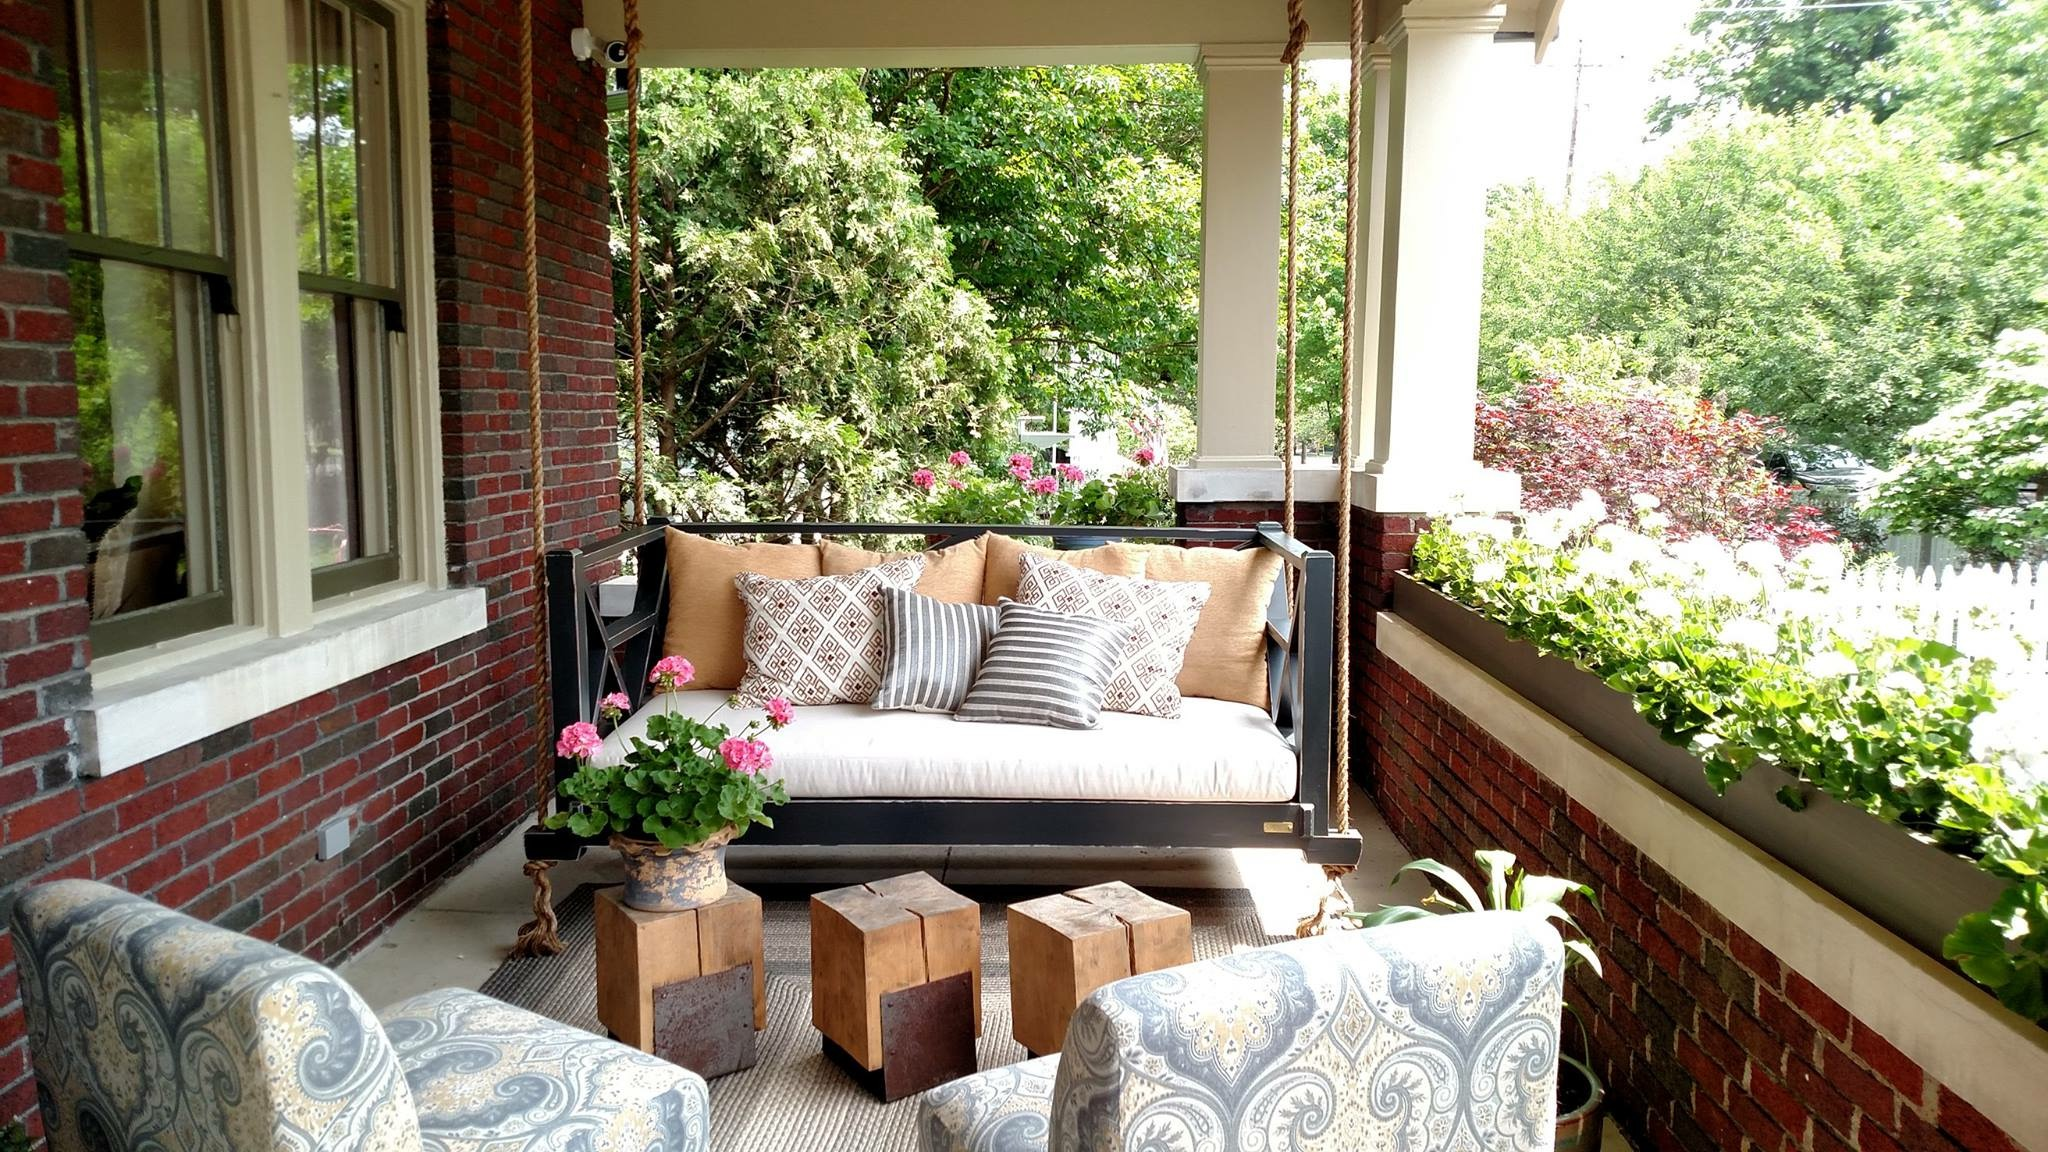 We designed the front porch of the O'More Show House as an extended living space where a family could hang out and entertain.